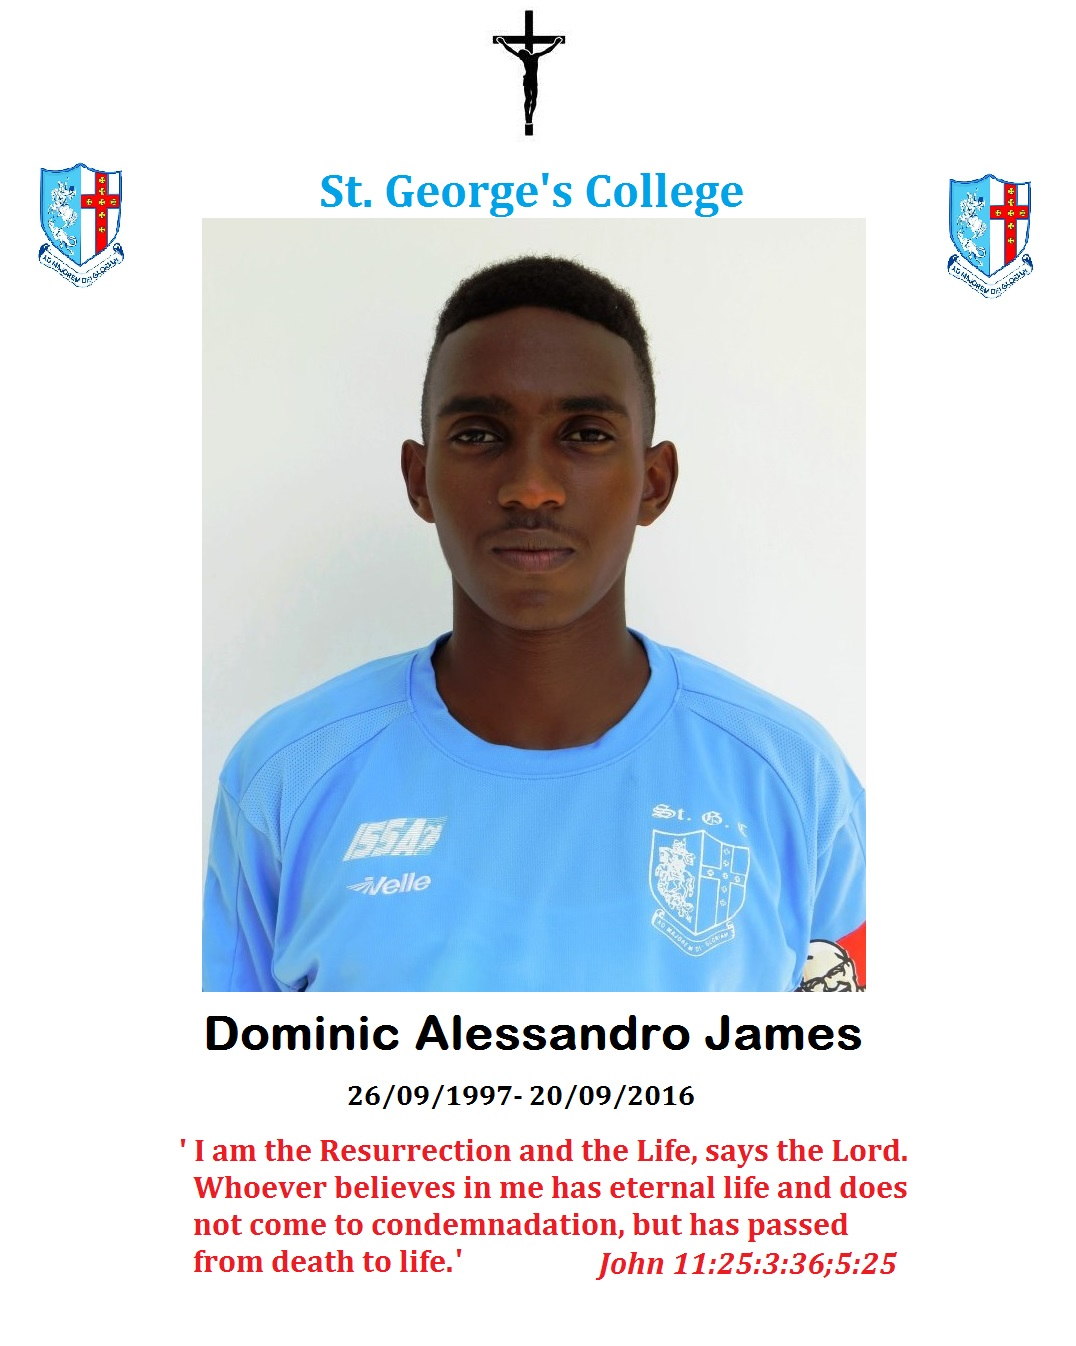 lowrie chin post stgc tragedy rest in peace dominic james